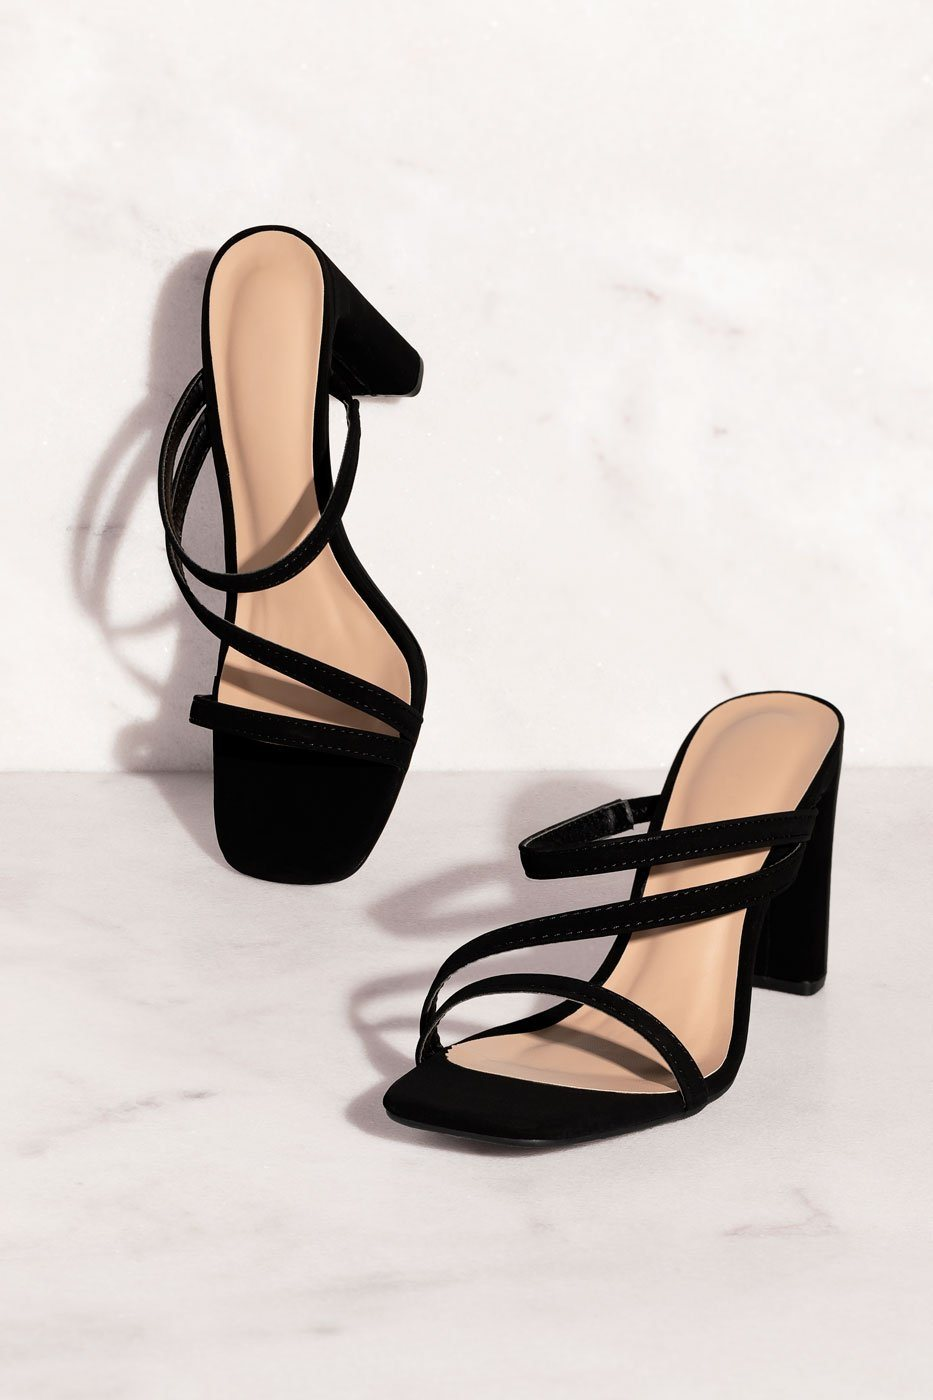 Tongue Tied Black Strappy Heels by